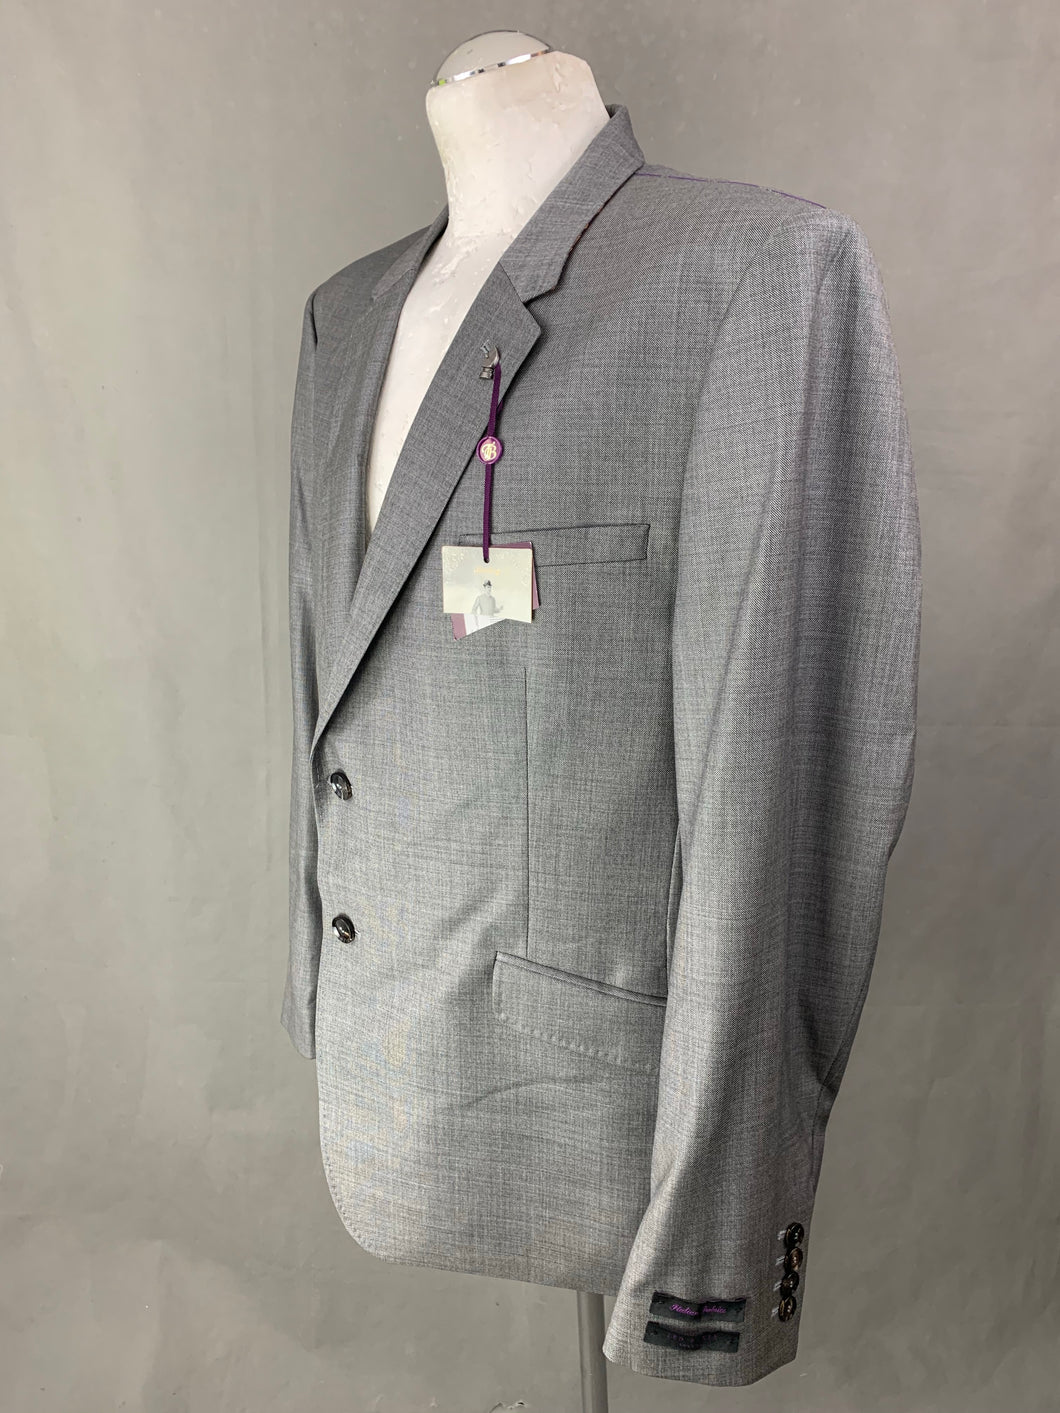 New TED BAKER Mens MODMARJ 100% Wool Blazer / Tailored Jacket Size 46R 46